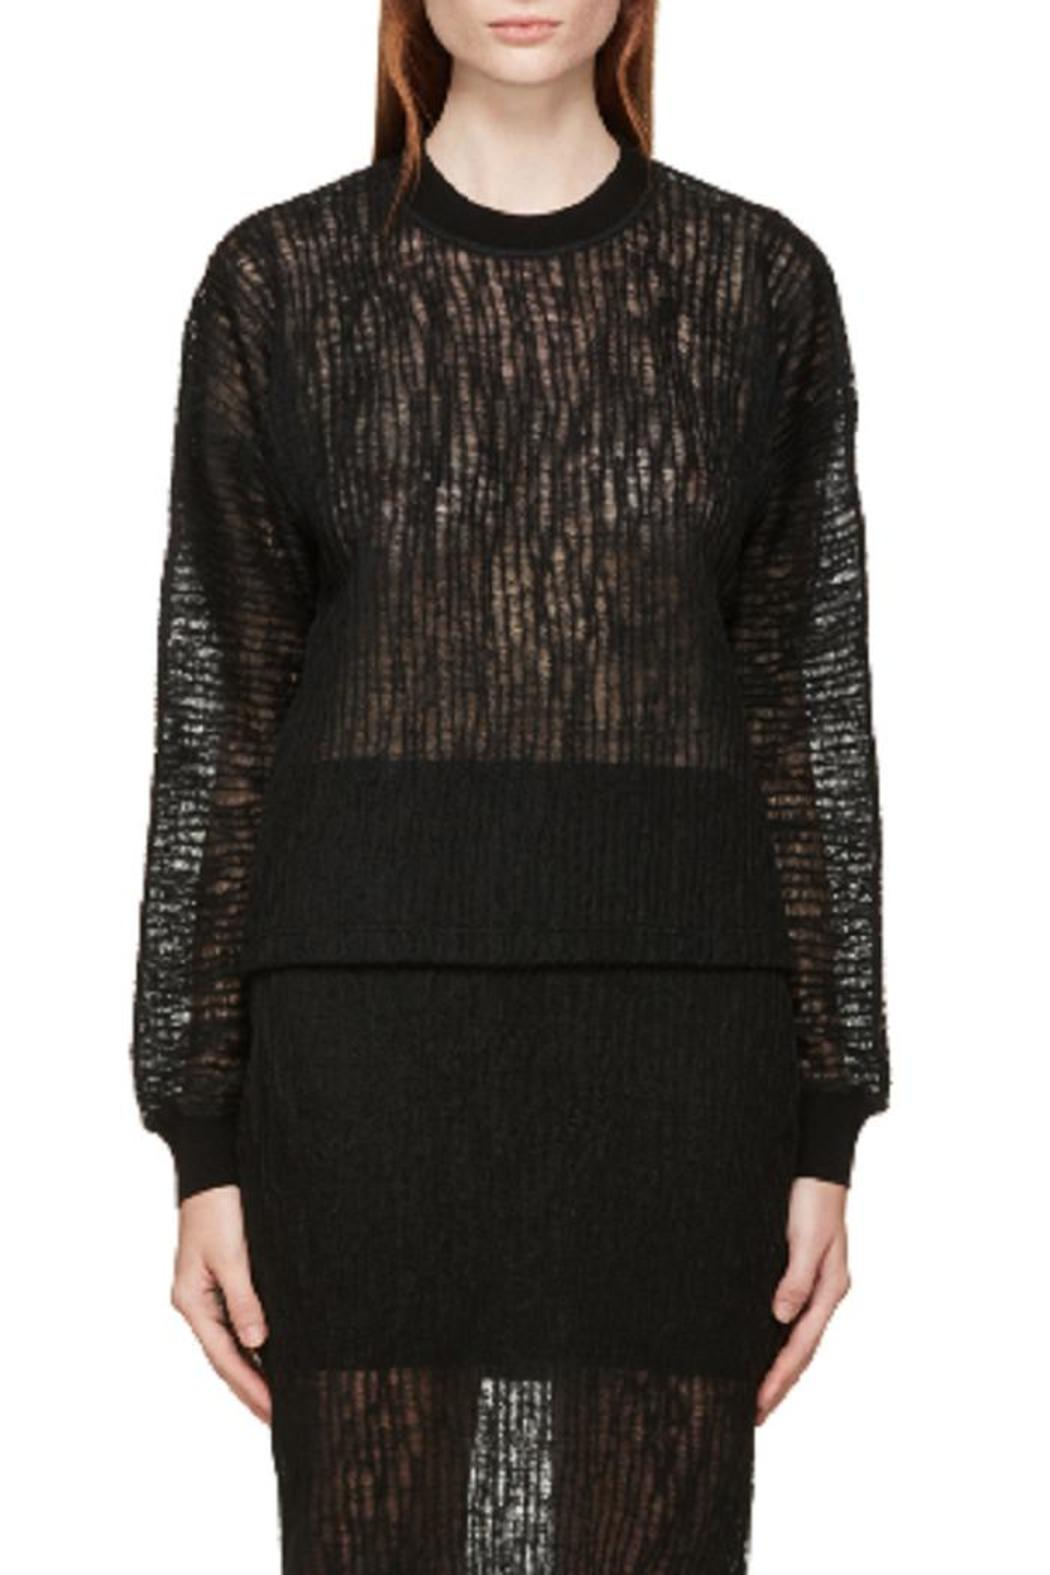 T by Alexander Wang Crinkle Knit Top - Main Image